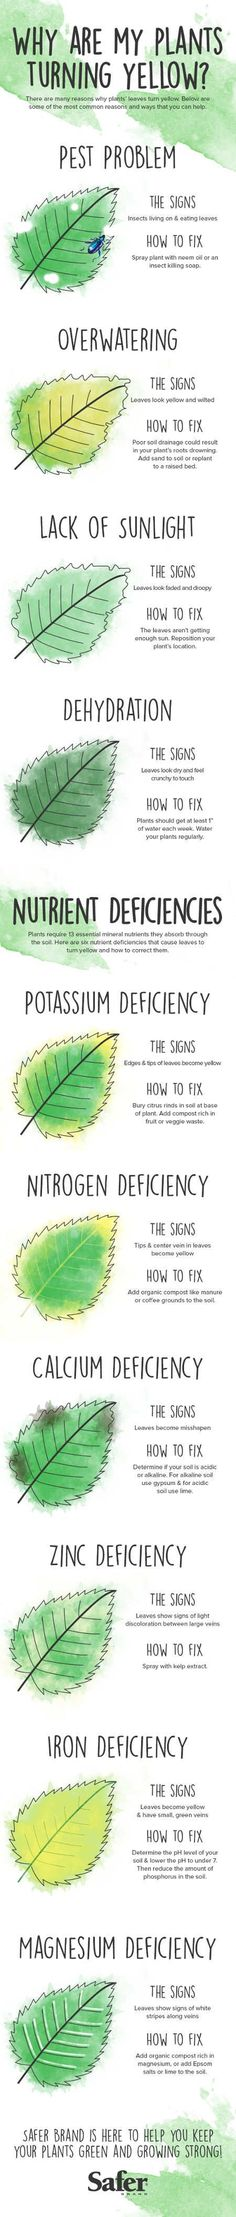 Why are my plants leaves turning yellow? ow to identify and diagnose plant problems and sickness. This infographic chart also shows solutions so that you can solve your gardening problems.